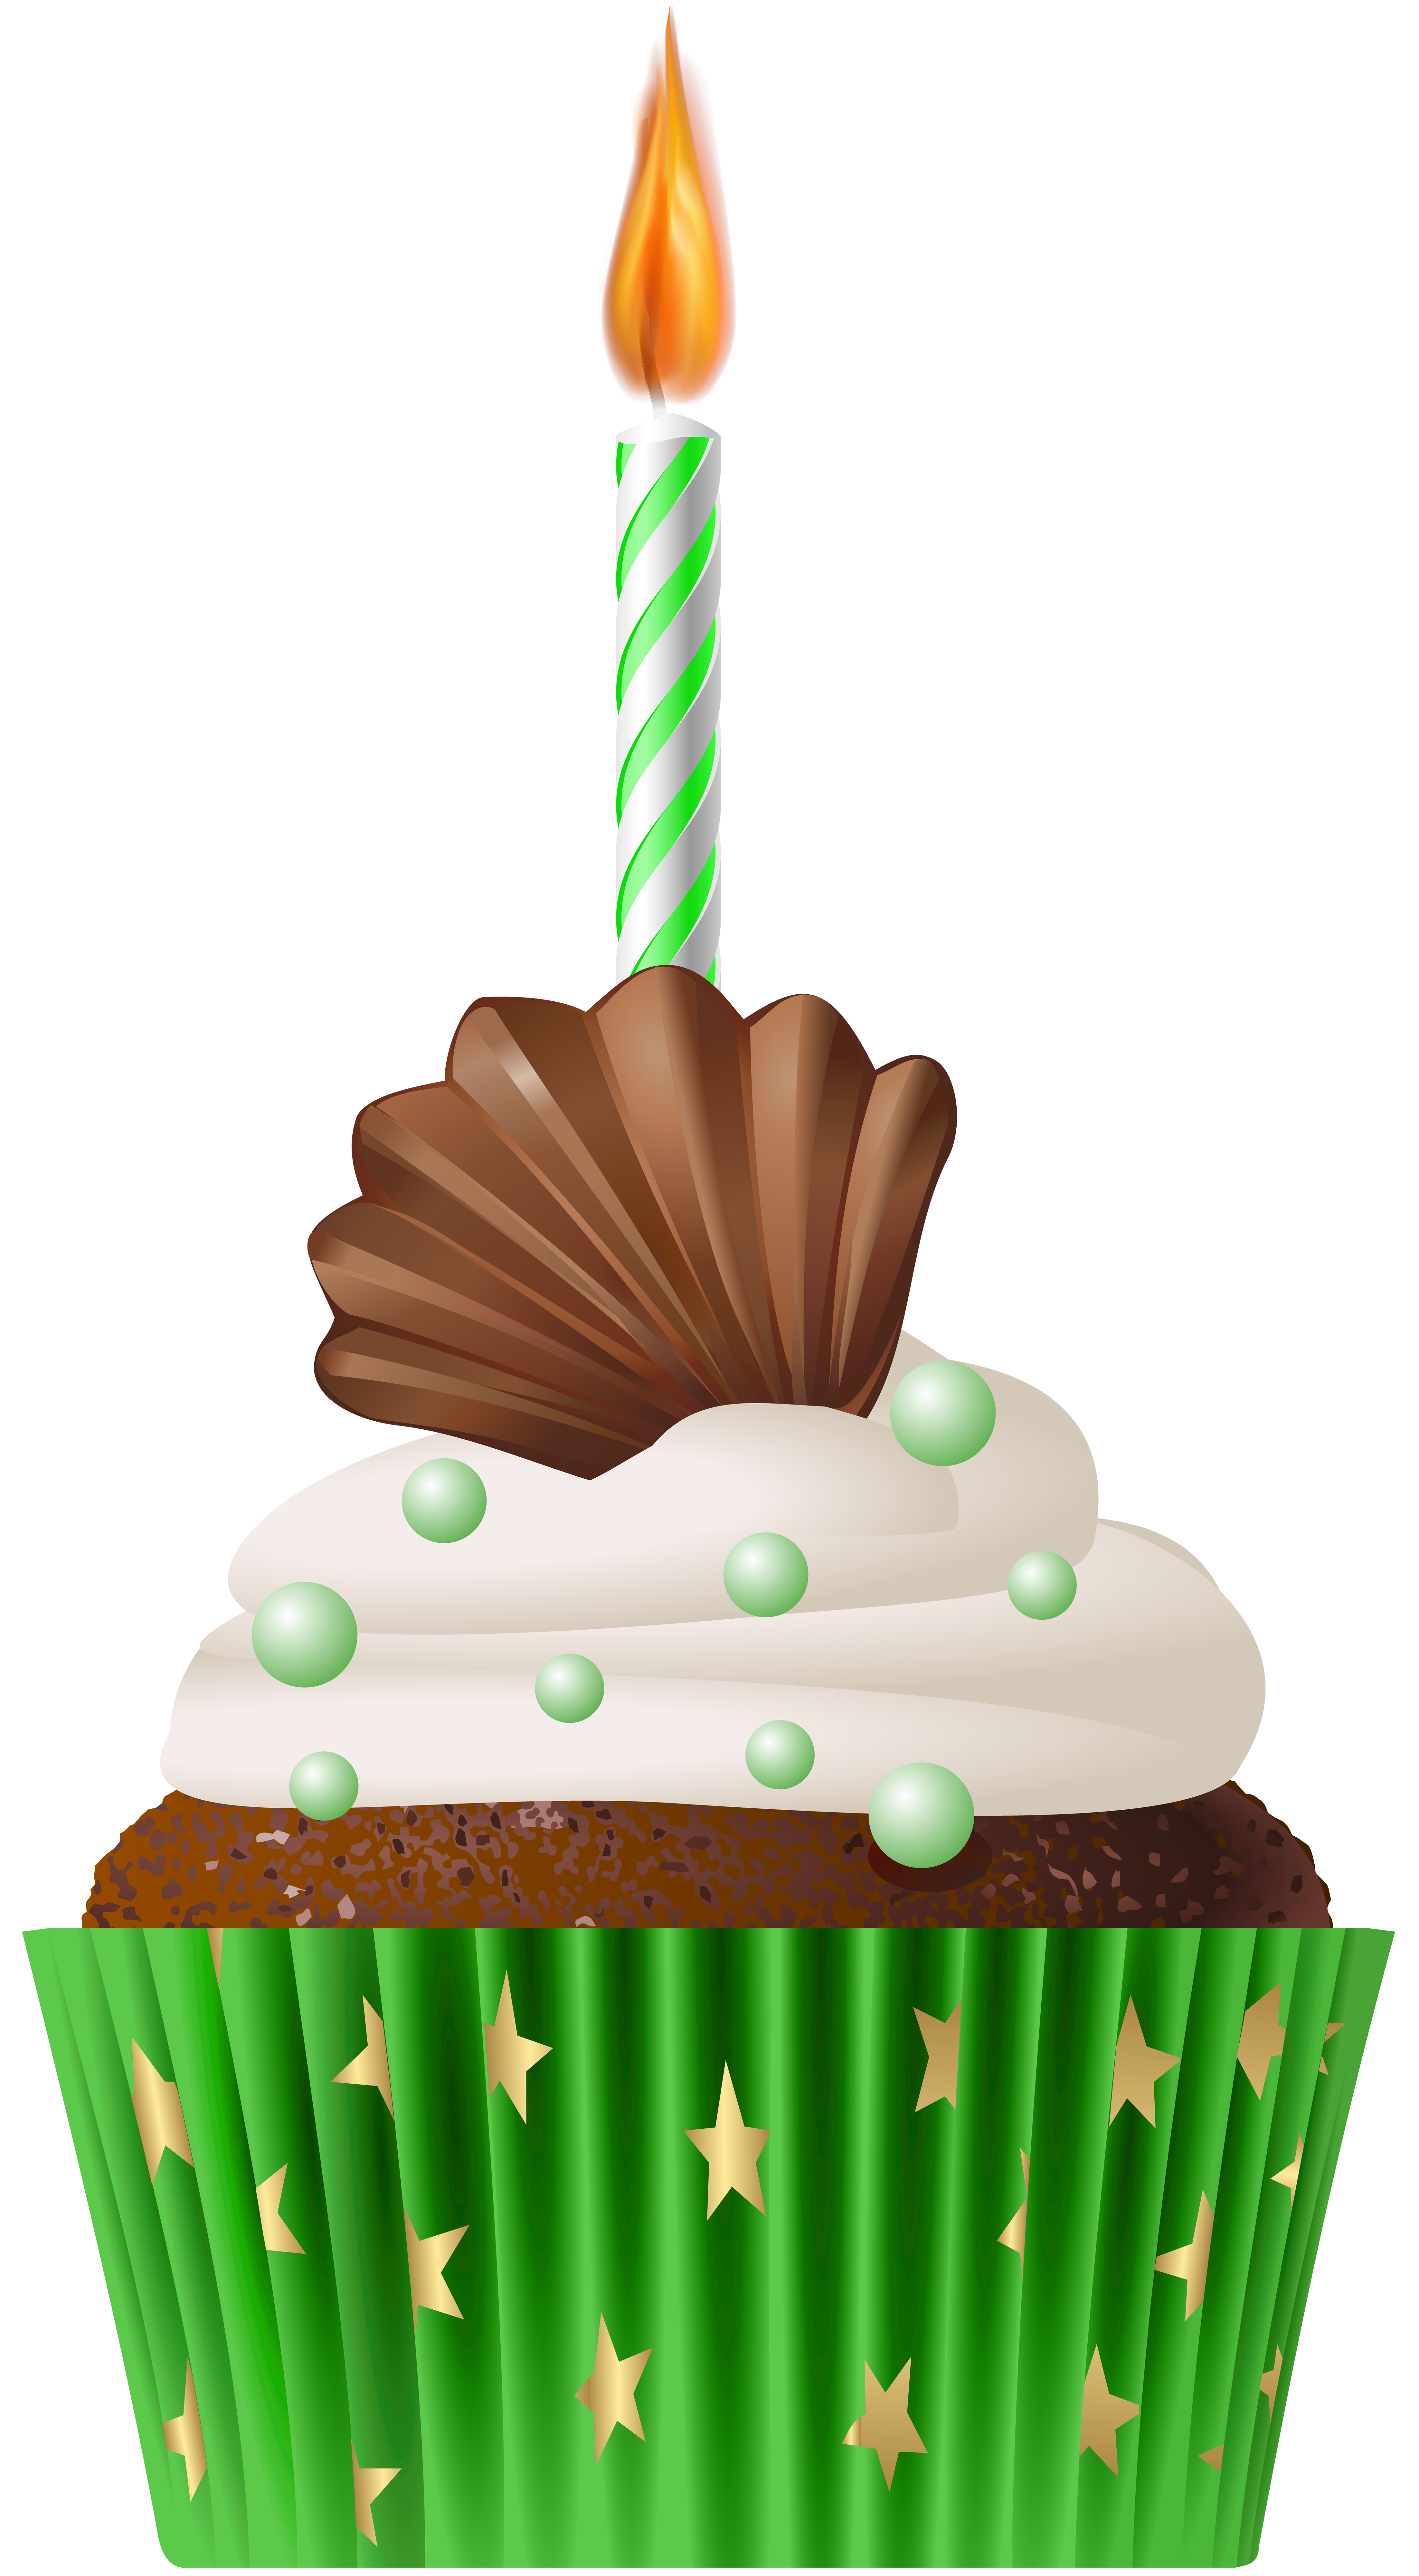 Muffin green with candle. Muffins clipart cupcake birthday